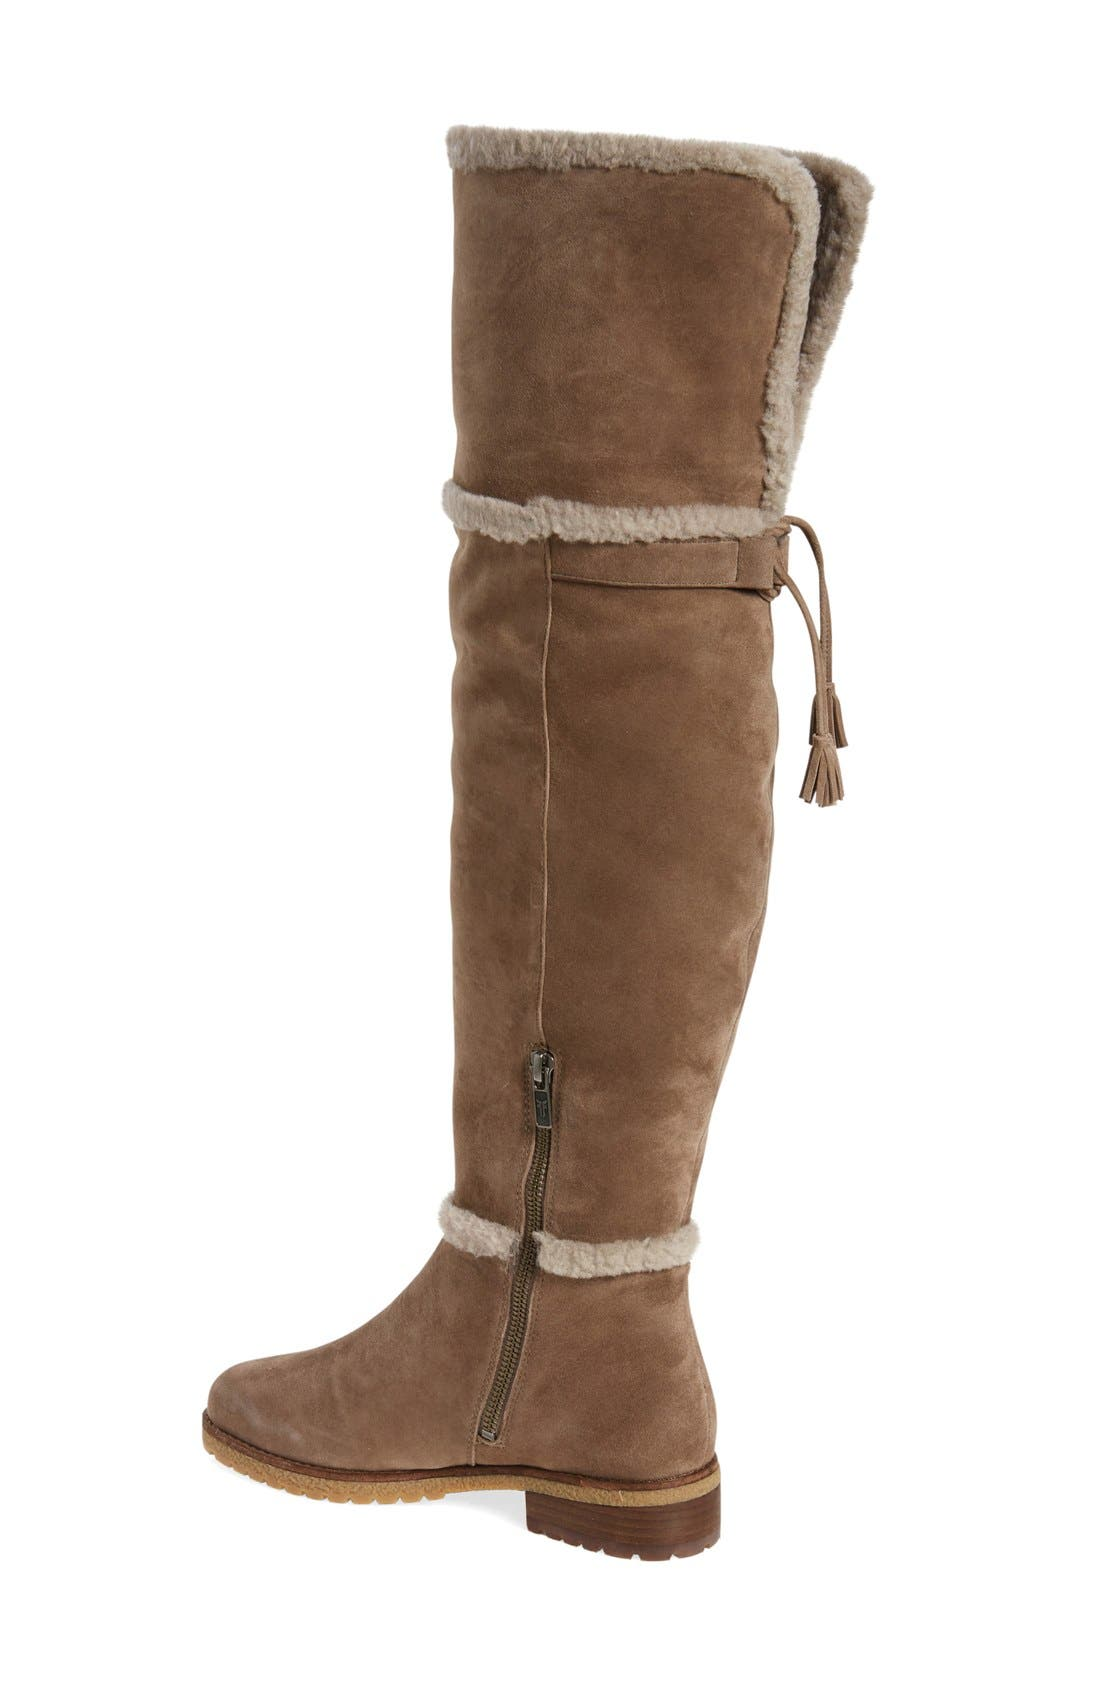 'Tamara' Genuine Shearling Over the Knee Boot,                             Alternate thumbnail 2, color,                             Taupe Suede